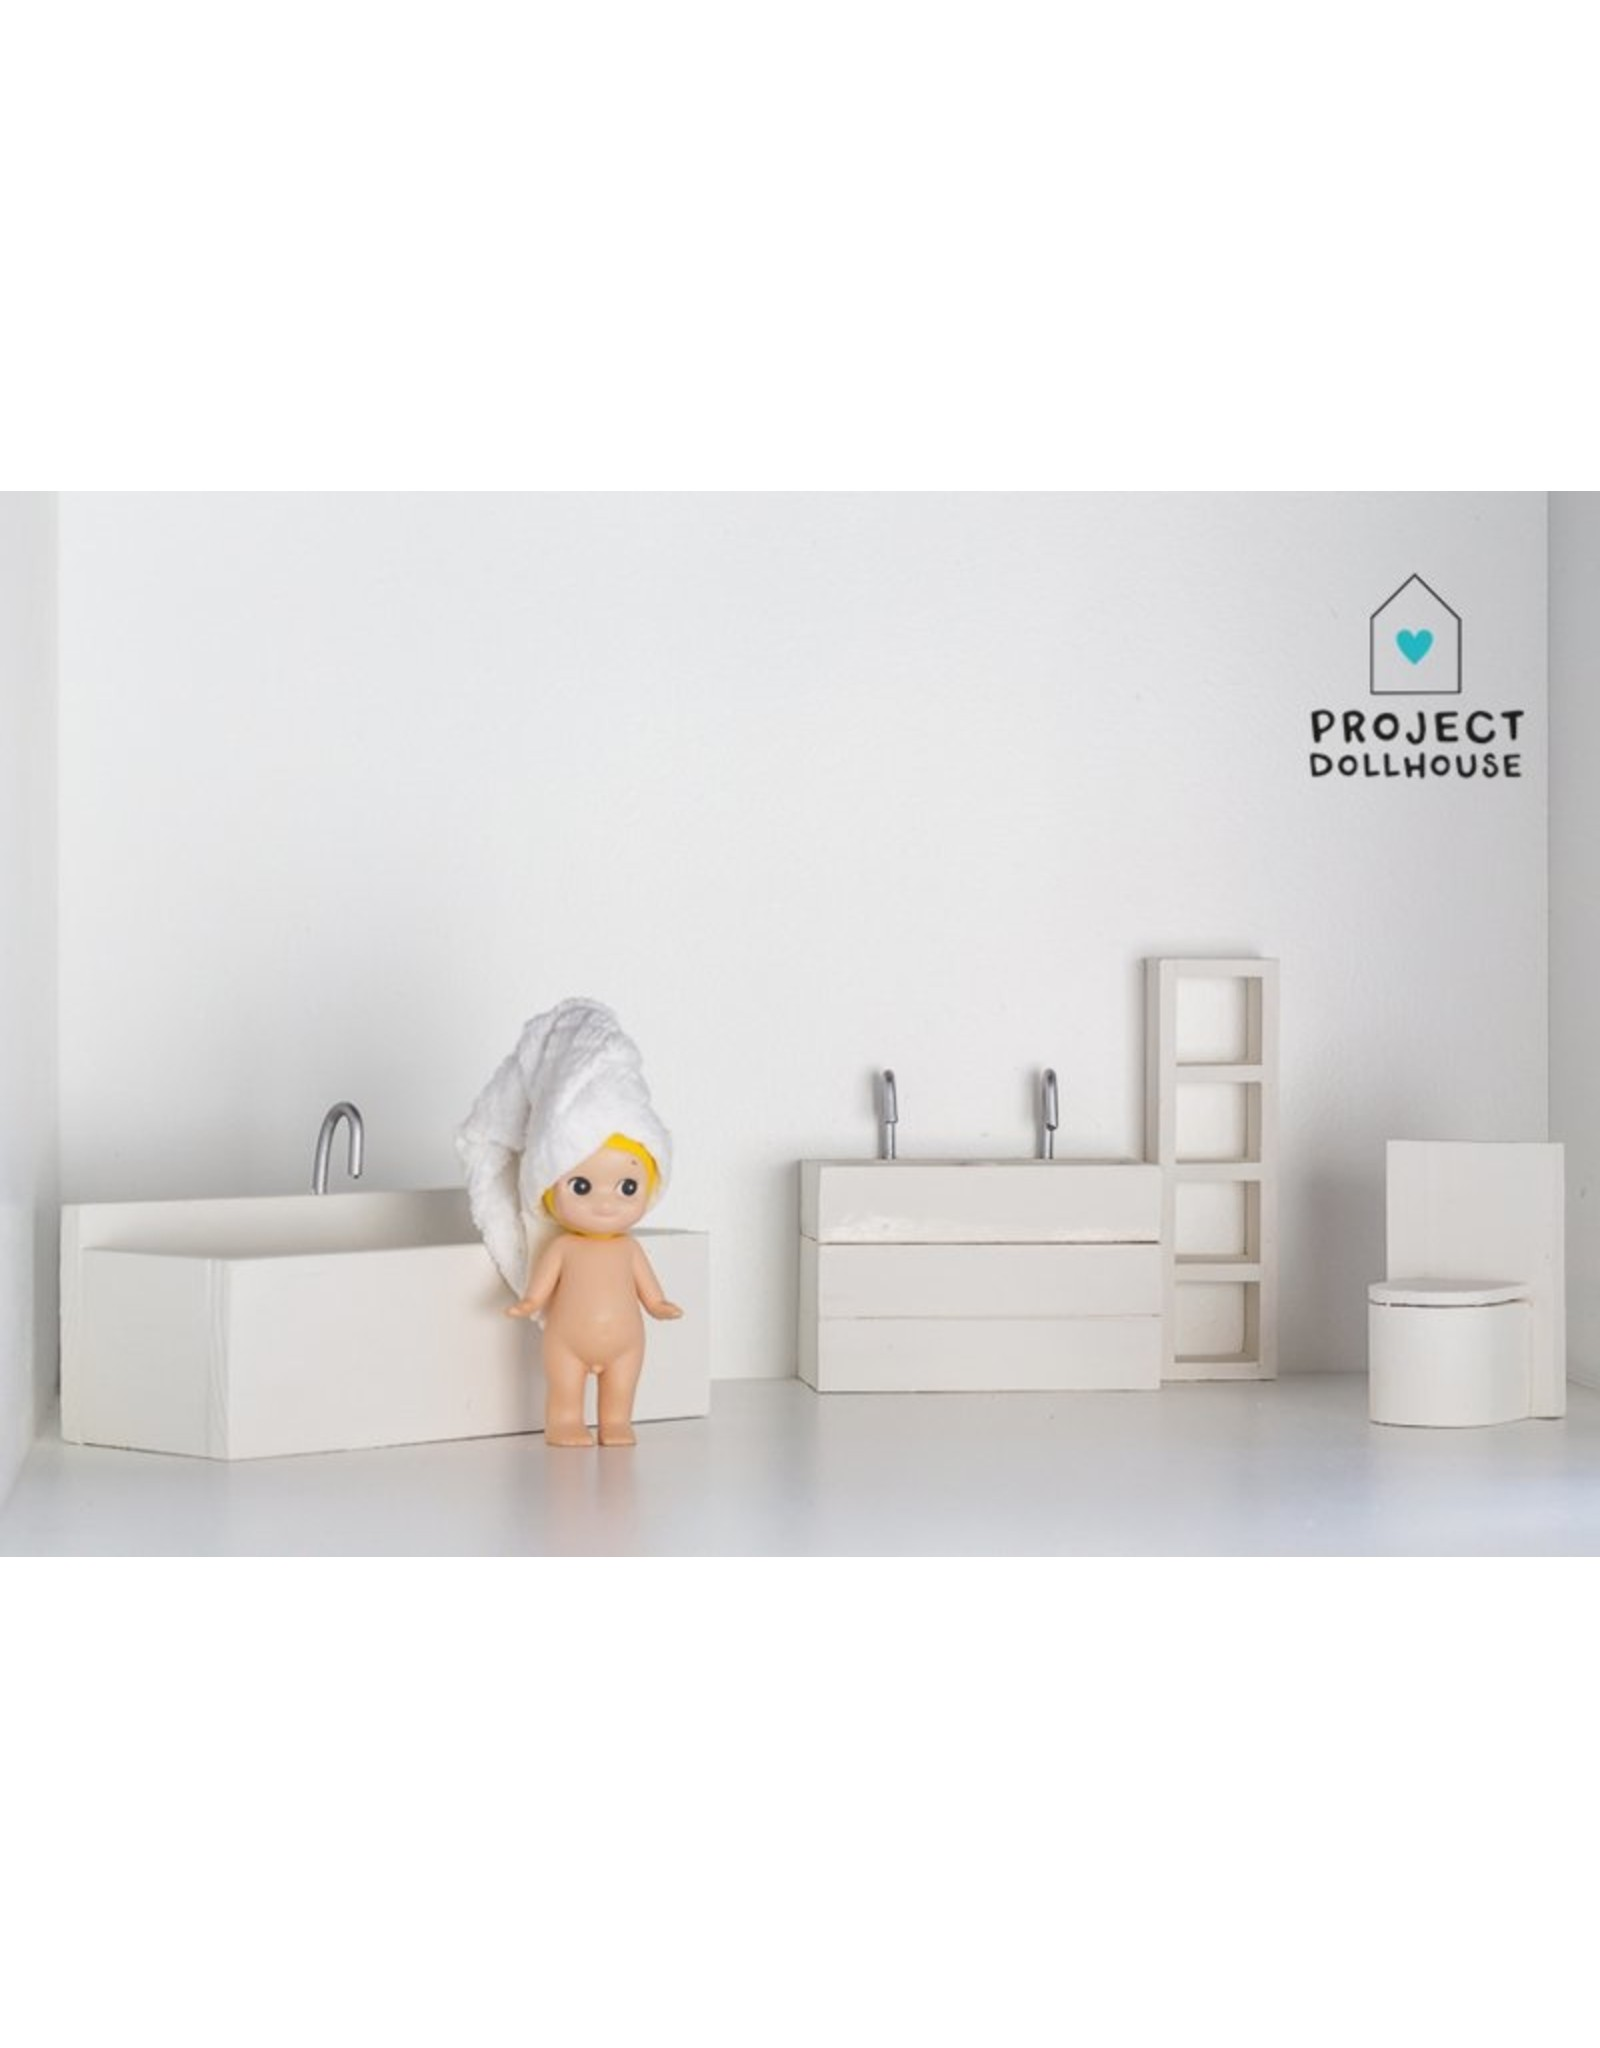 Project Dollhouse Bathroom White